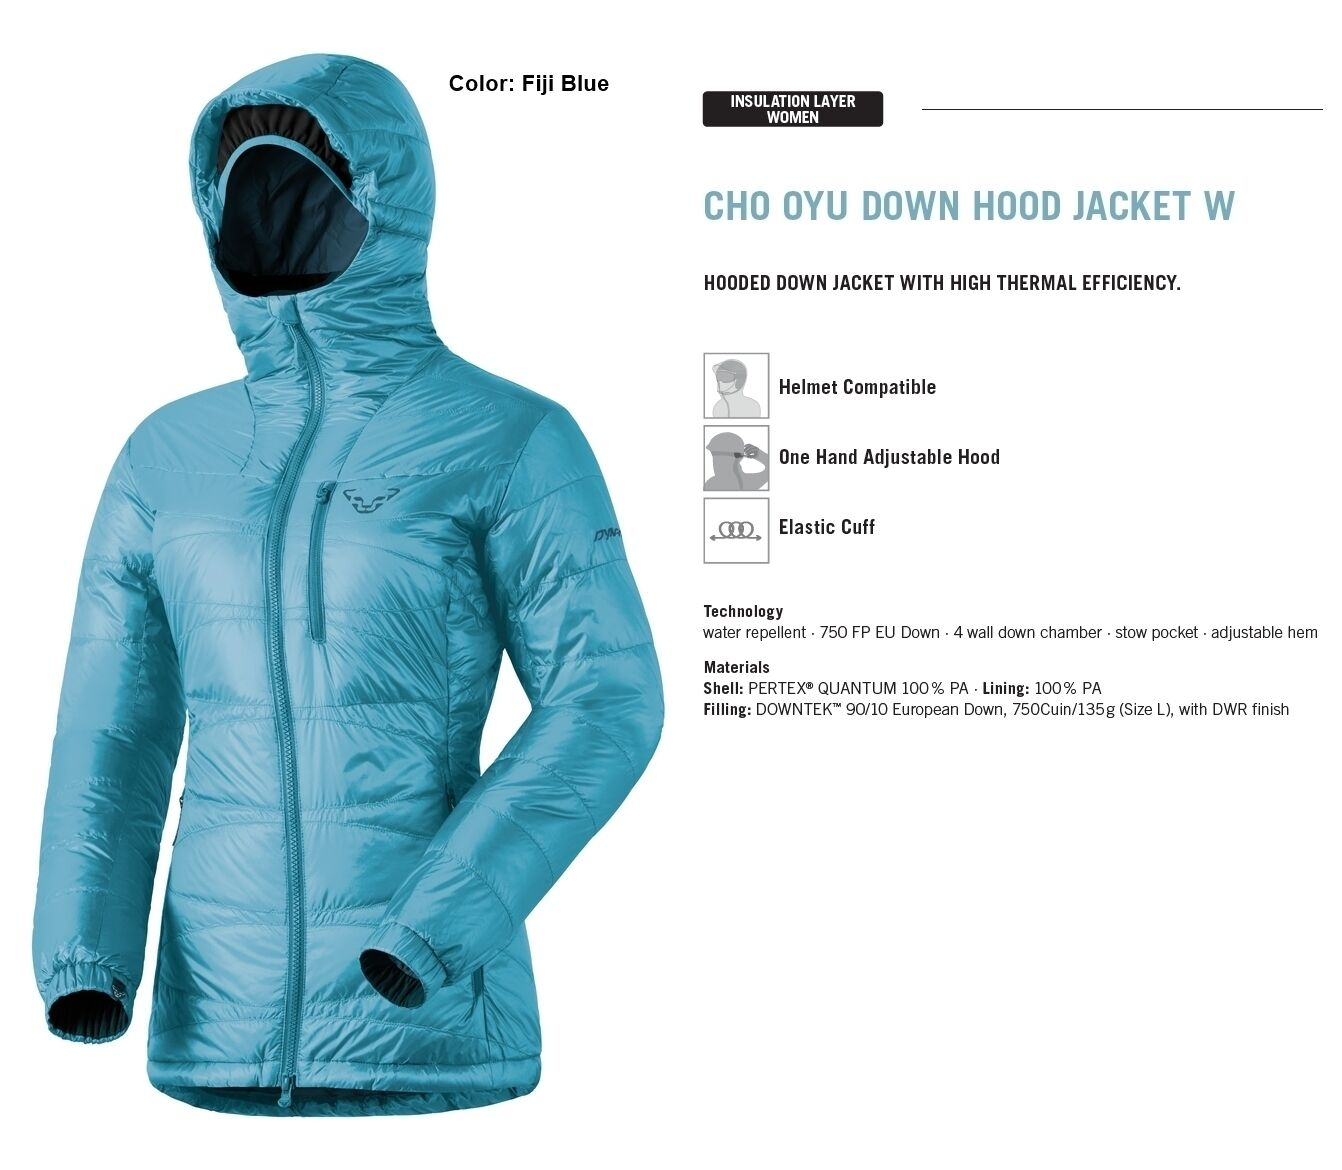 NEW Dynafit Cho Oyu Down Insulator Blau daSie Large Winter Ski Jacket Ret 320